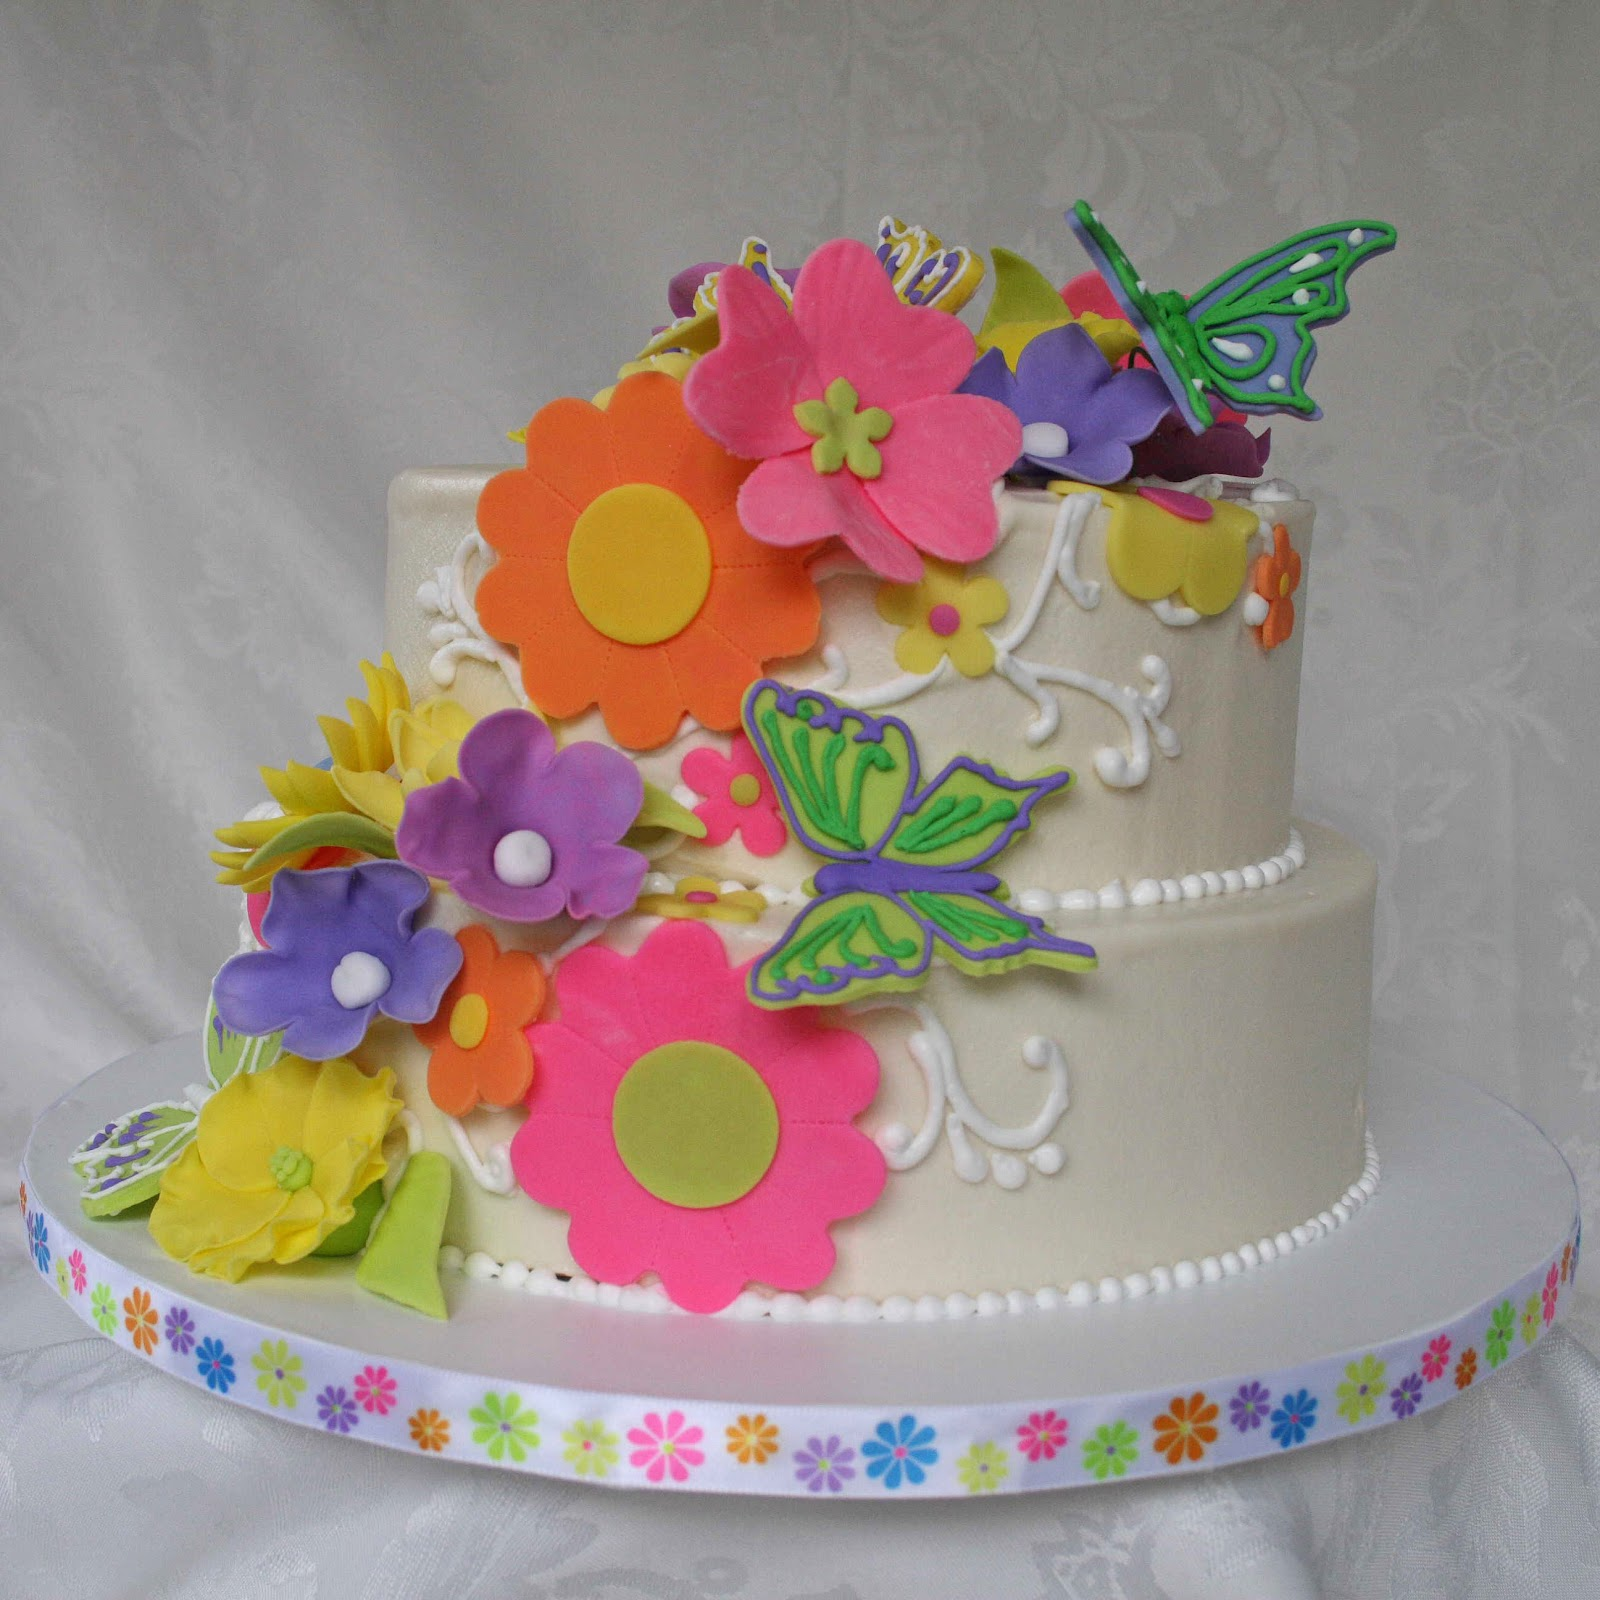 All Kinds of Sugar Butterfly and Flower Wedding Cake